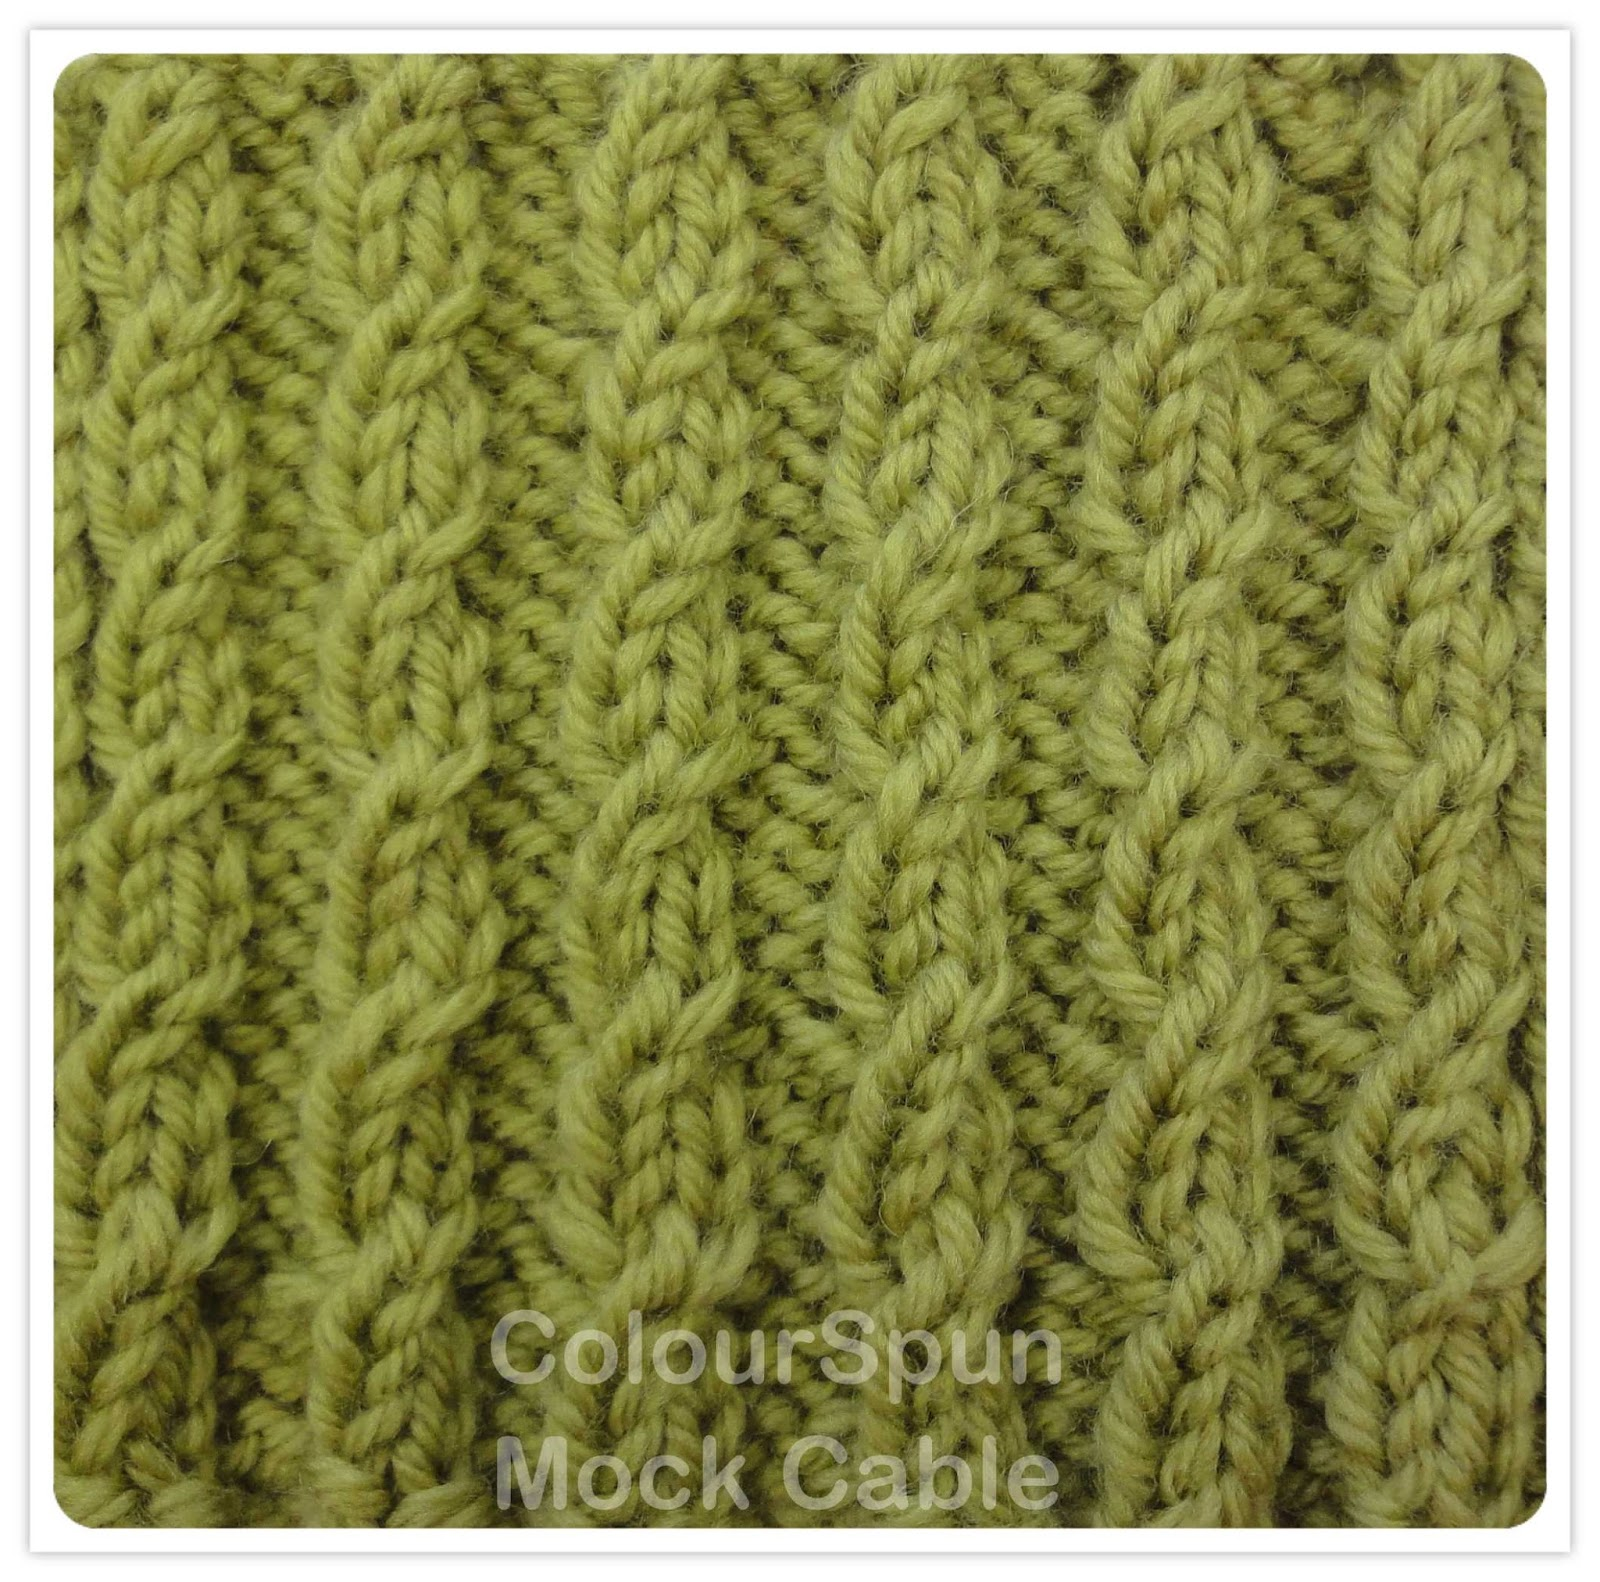 Colourspun Colourspun In Stitches Mock Cable